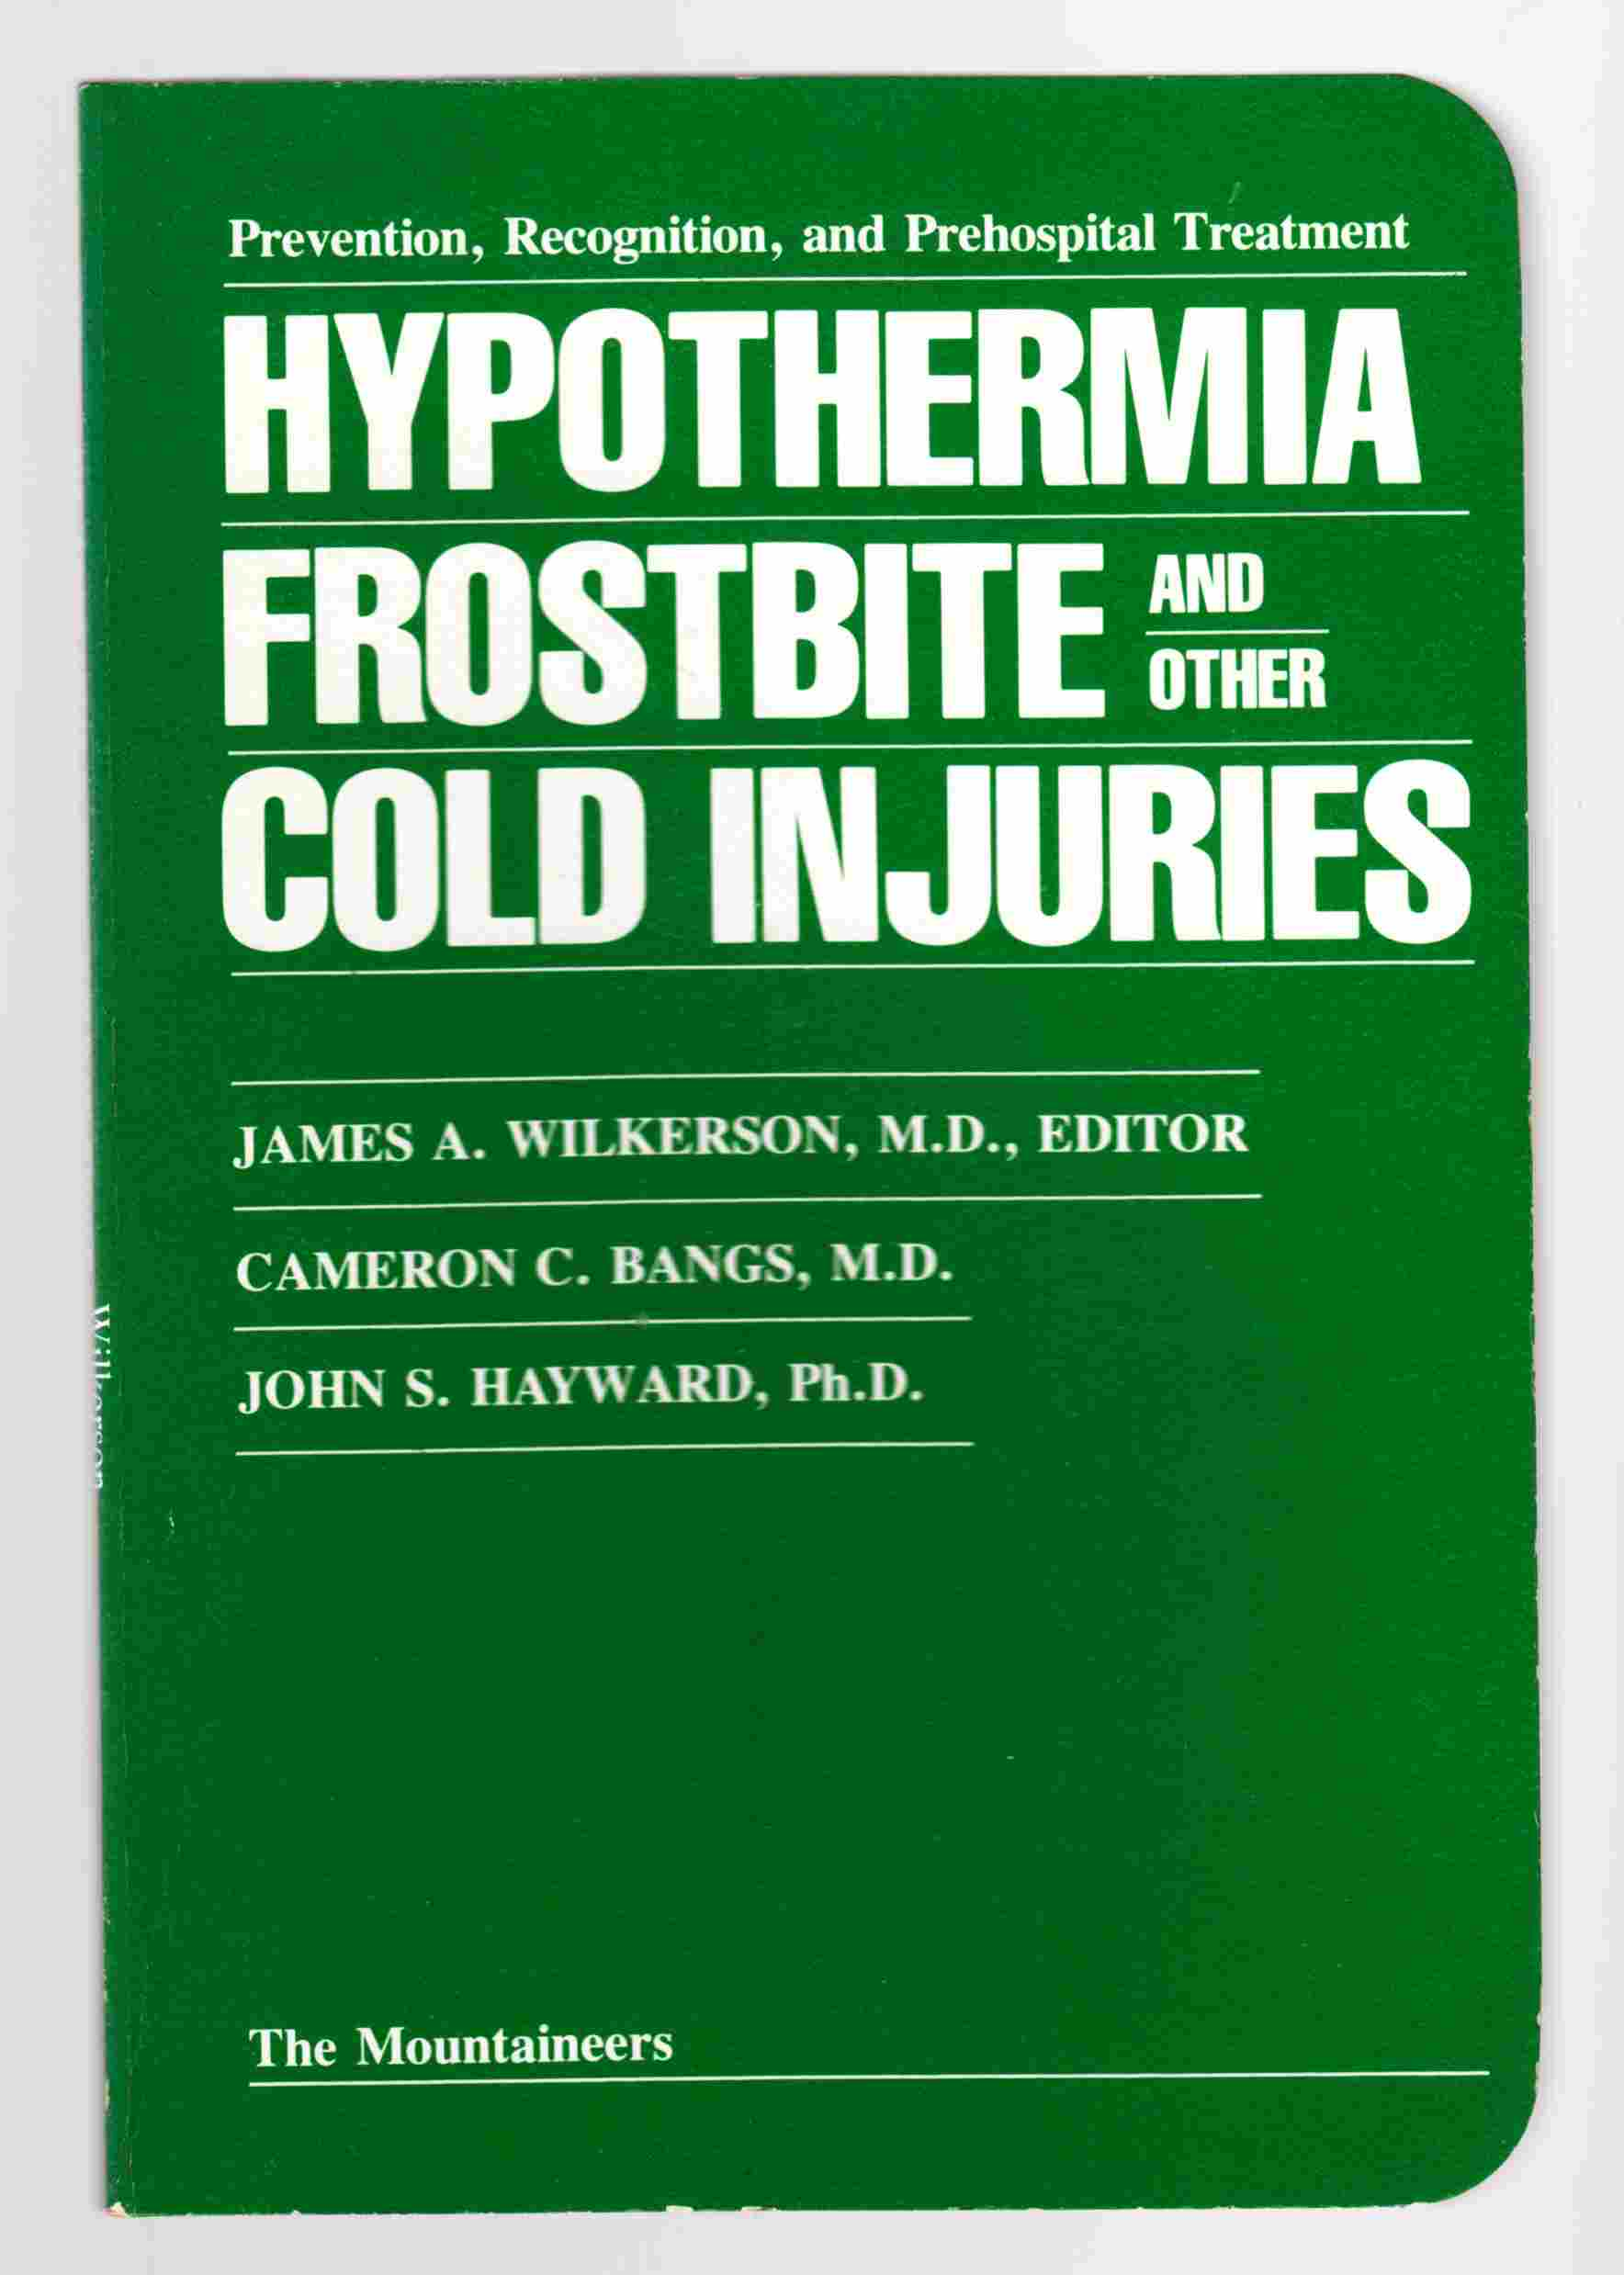 Image for Hypothermia, Frostbite, and Other Cold Injuries Prevention, Recognition, and Prehospital Treatment